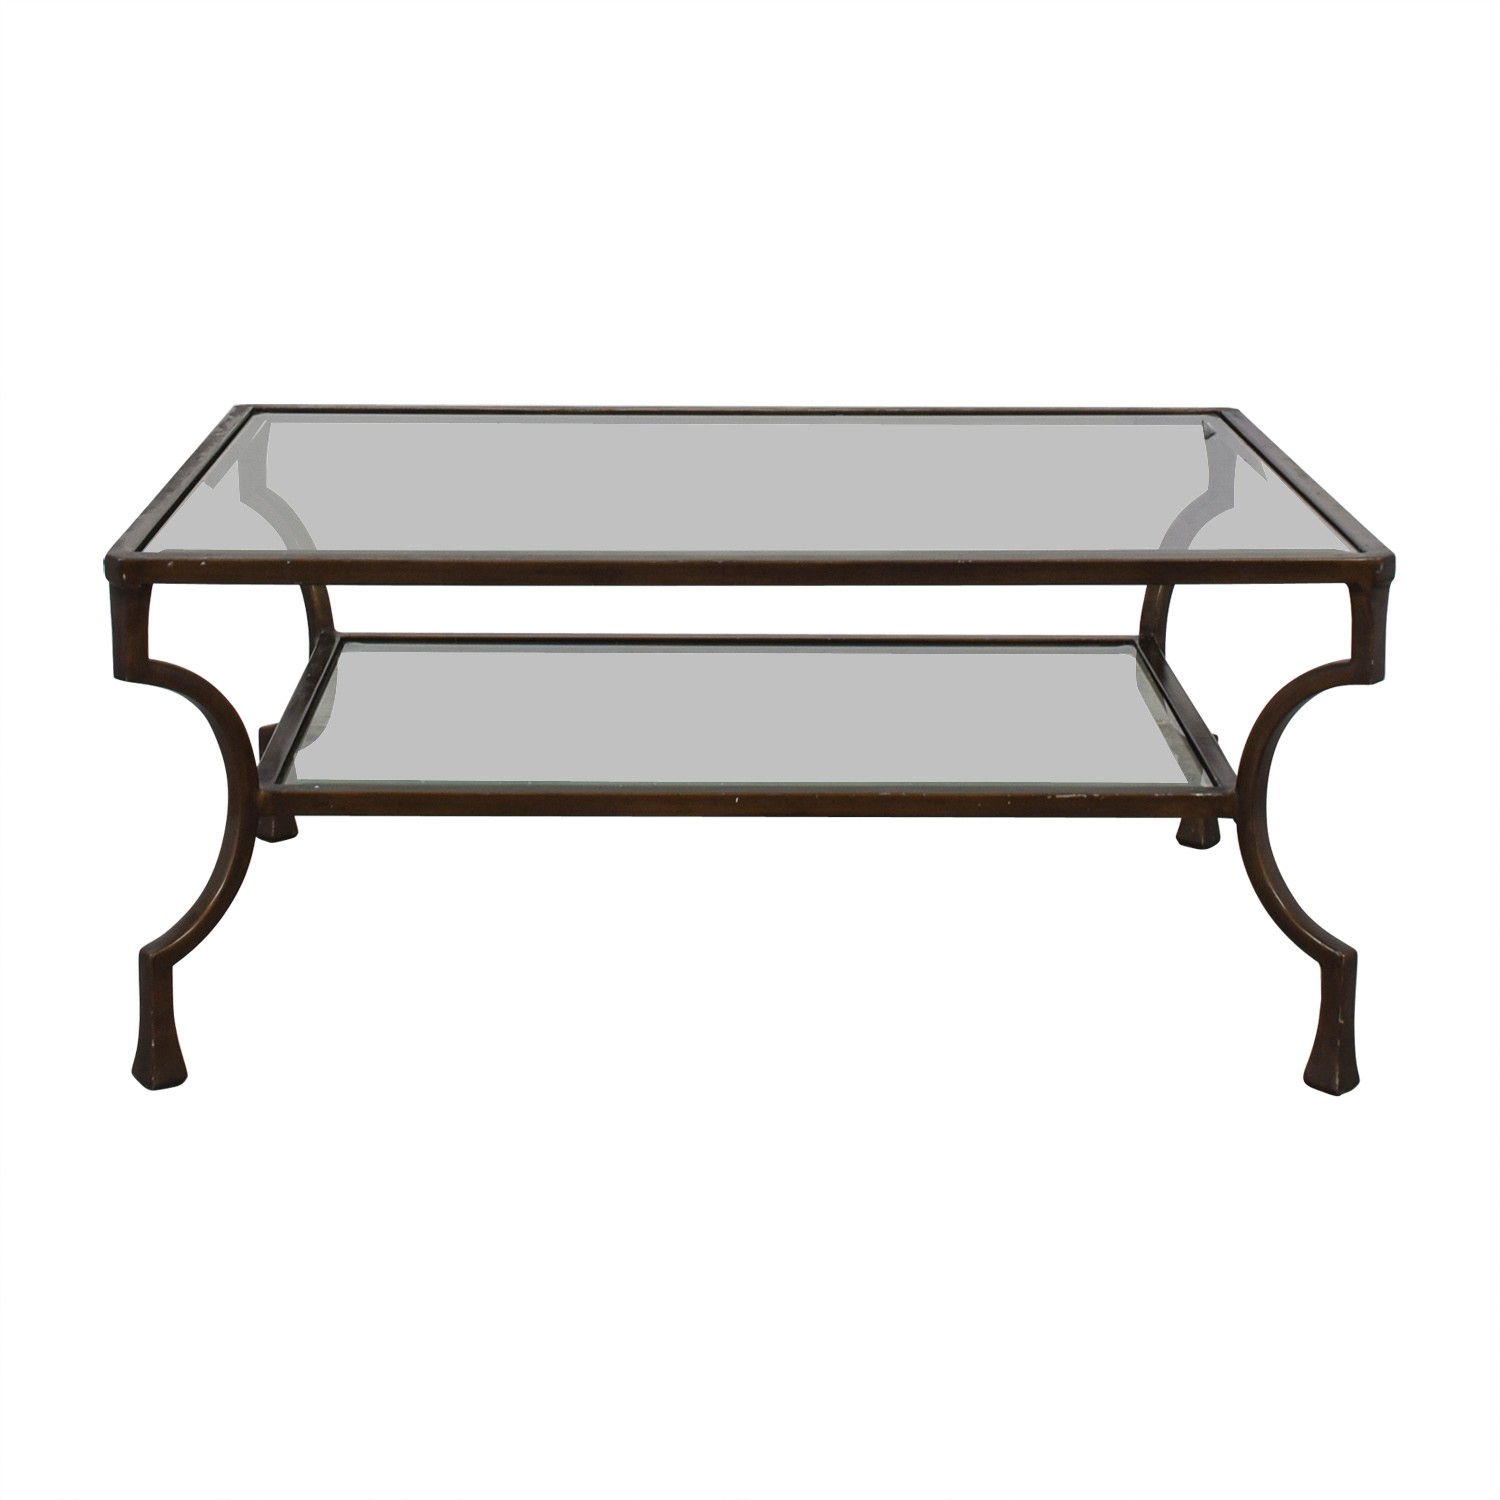 Ralph Lauren Glass Coffee Table Tables